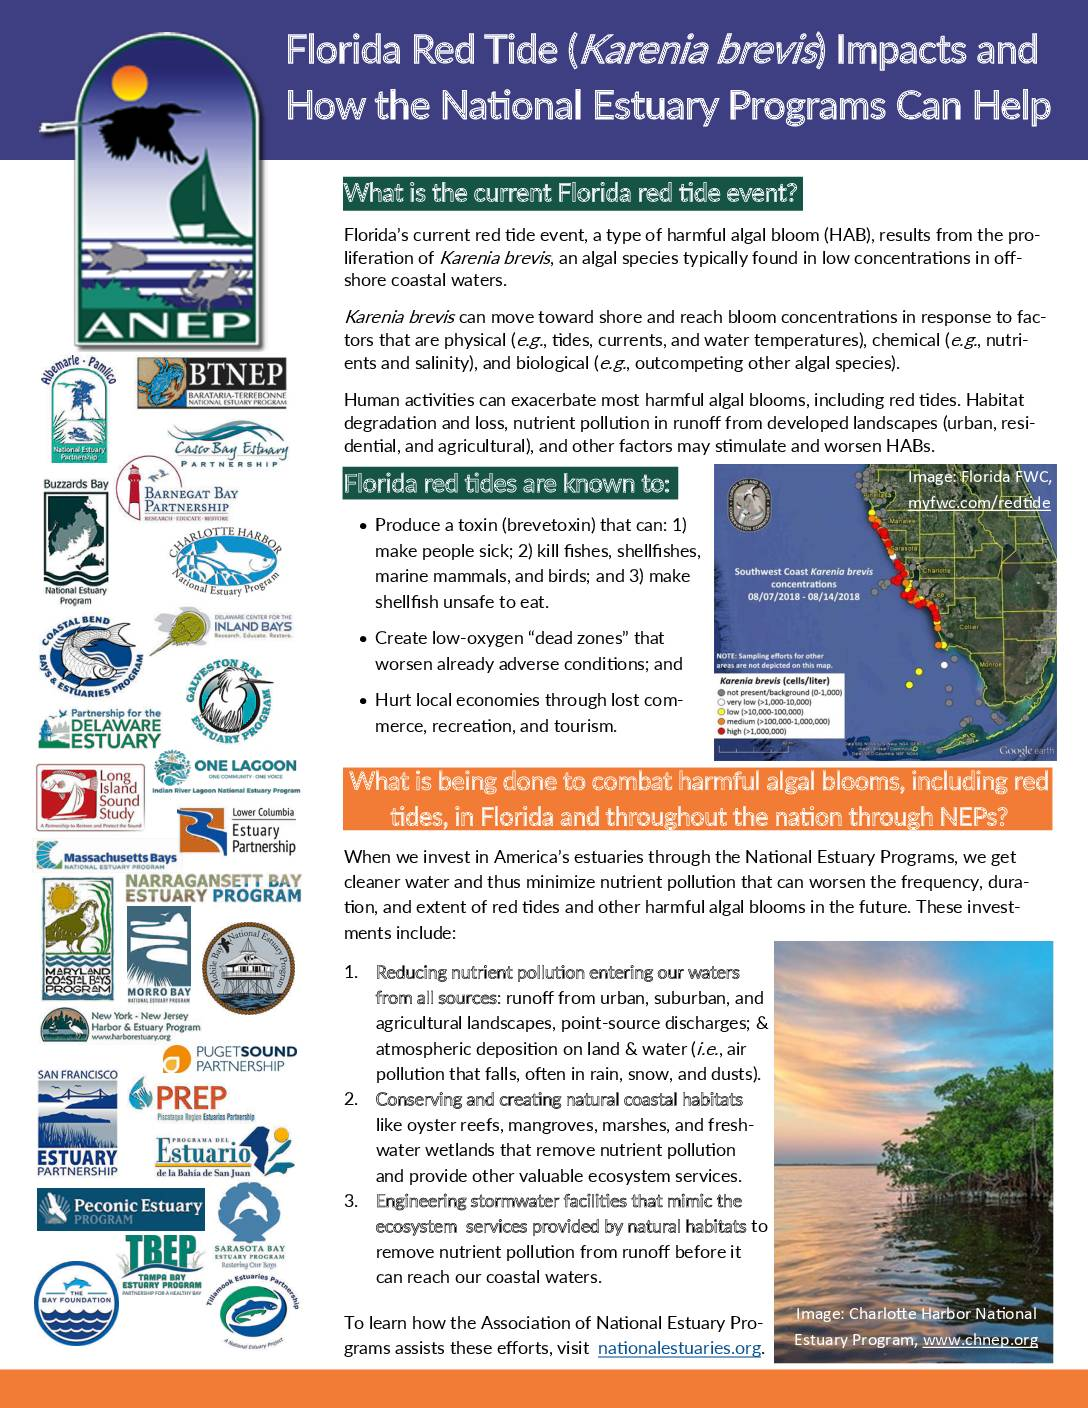 Florida Red Tide Impacts and How the National Estuary Programs Can Help